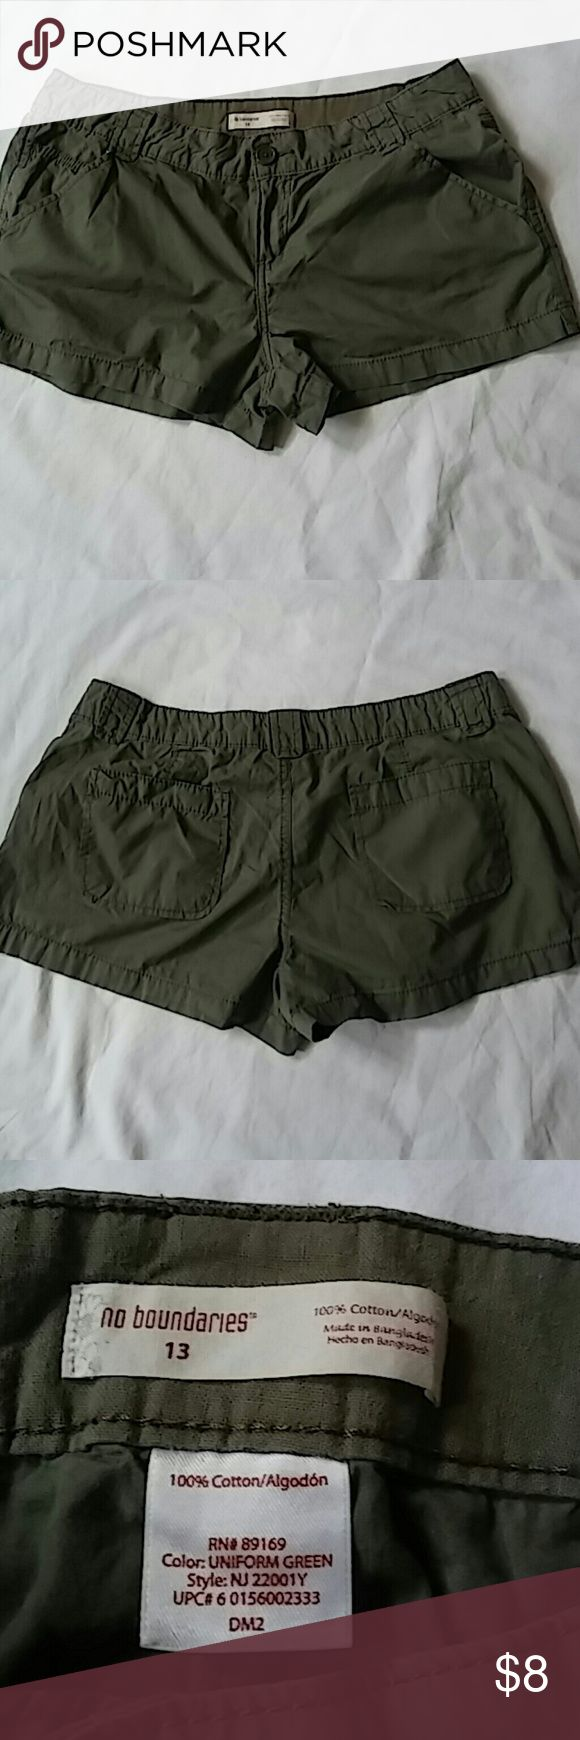 Women's mini shorts In great shape..worn just twice. Washed and sanitized....look like new. No Boundaries Shorts Skorts